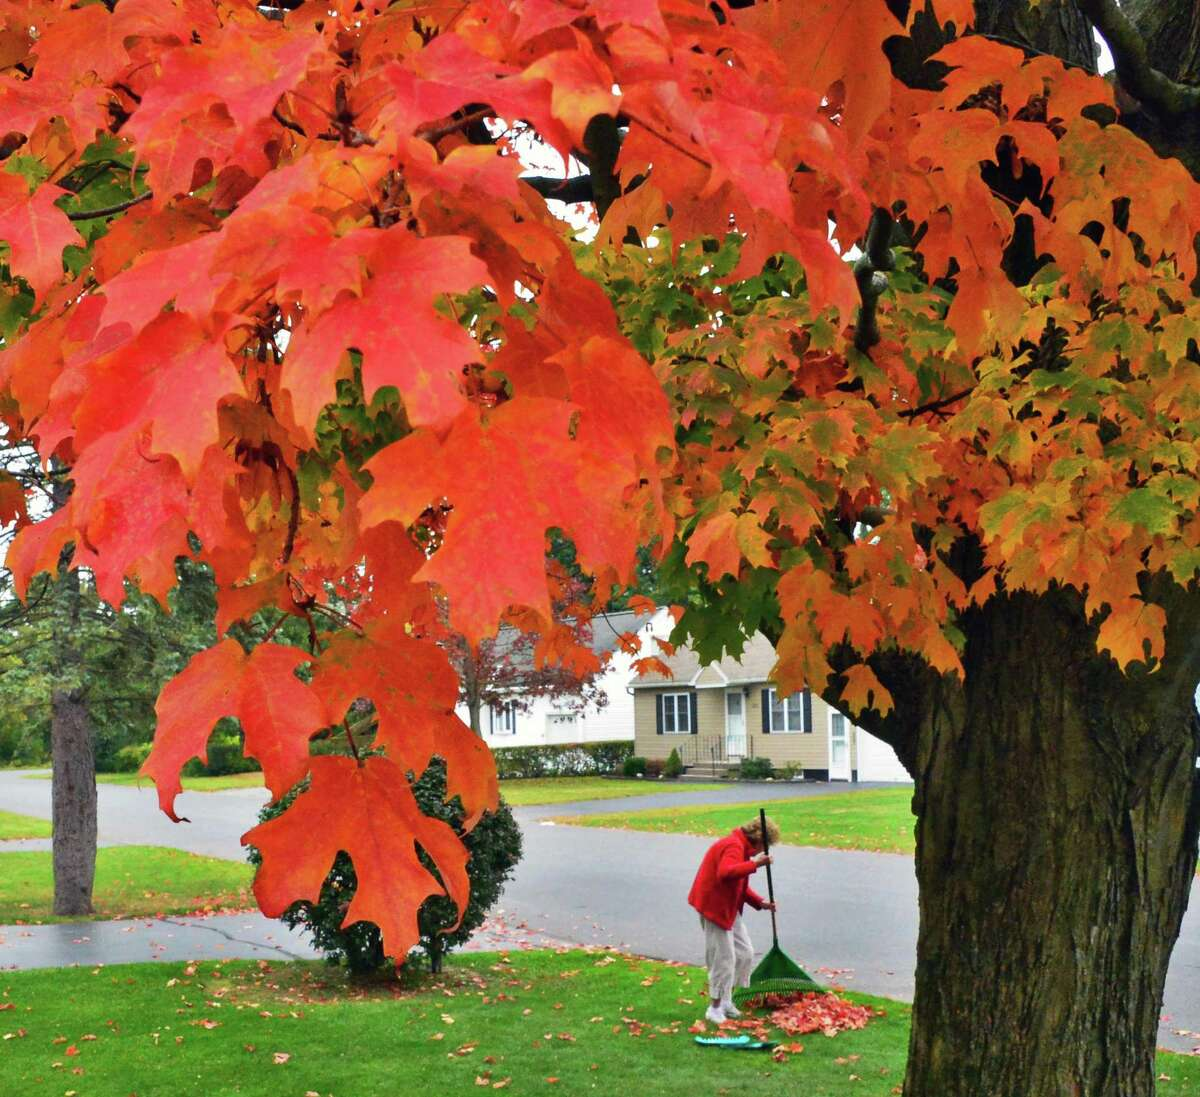 Joan Thuotte rakes leaves under a sugar maple in her front yard Wednesday Oct. 2, 2013, in Rotterdam, NY. (John Carl D'Annibale / Times Union)